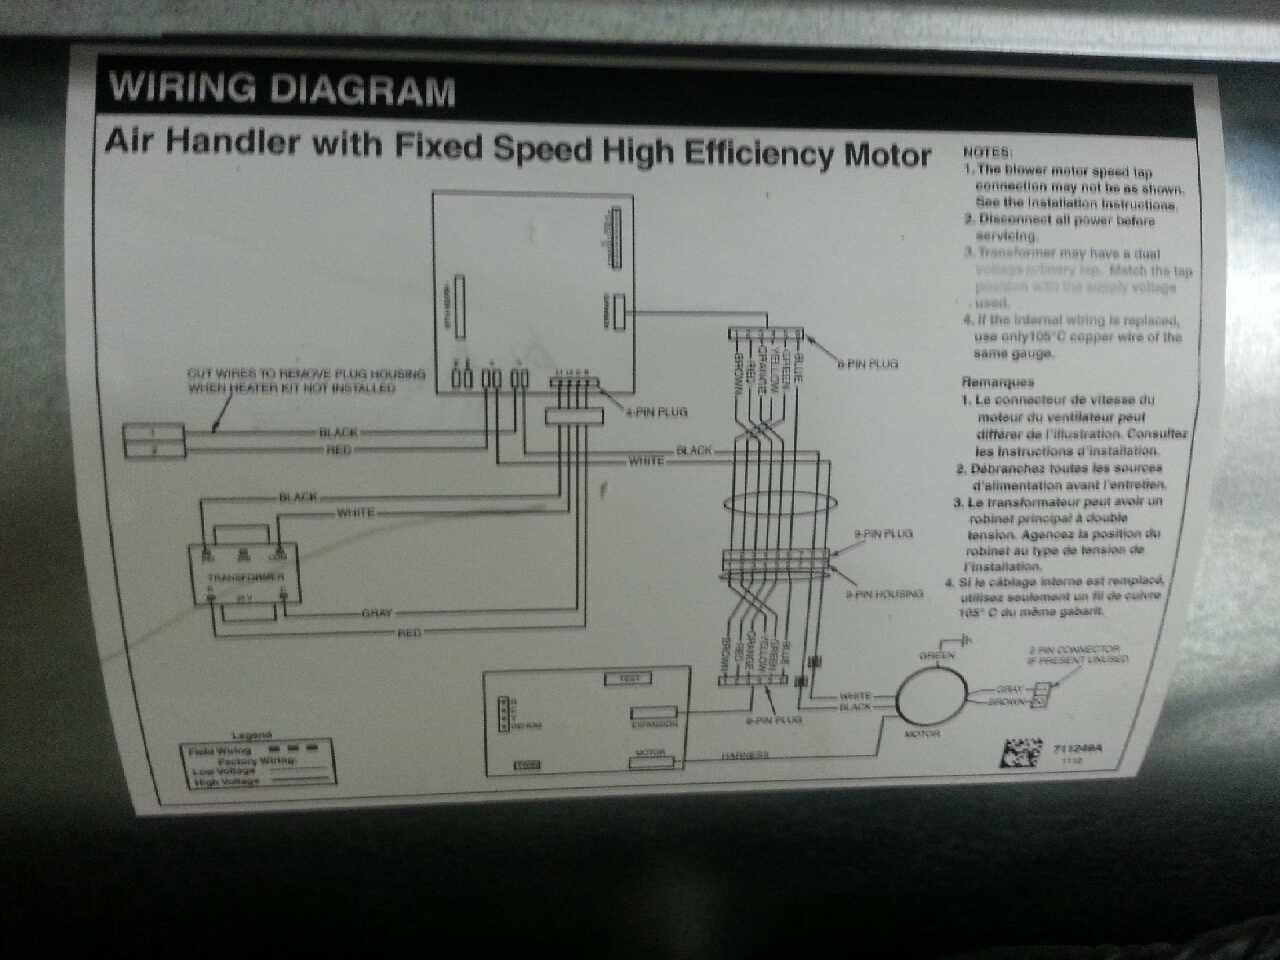 Nordyne air handler wiring diagram free printable wiring diagrams heat pump thermostat wiring diagrams heater air handler nordyne wiring diagram heil air handler wiring diagram nordyne electric furnace wiring diagram cheapraybanclubmaster Image collections